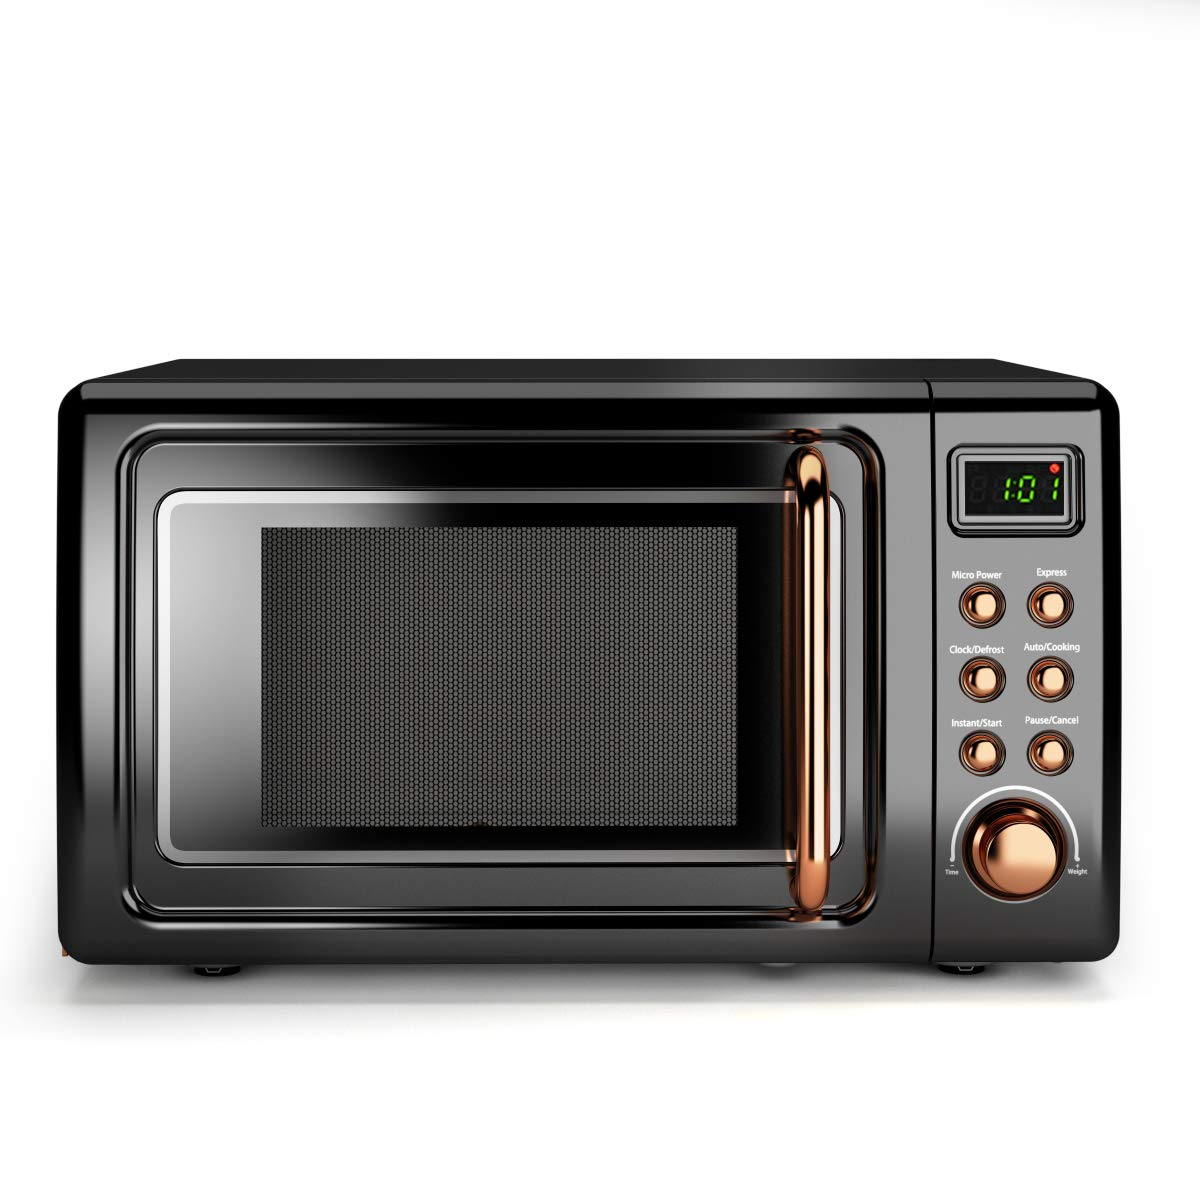 COSTWAY Retro Countertop Microwave Oven, 0.7Cu.ft, 700-Watt, Cold Rolled Steel Plate, 5 Micro Power, Delayed Start Function, with Glass Turntable & Viewing Window, LED Display, Child Lock (Gold) by COSTWAY